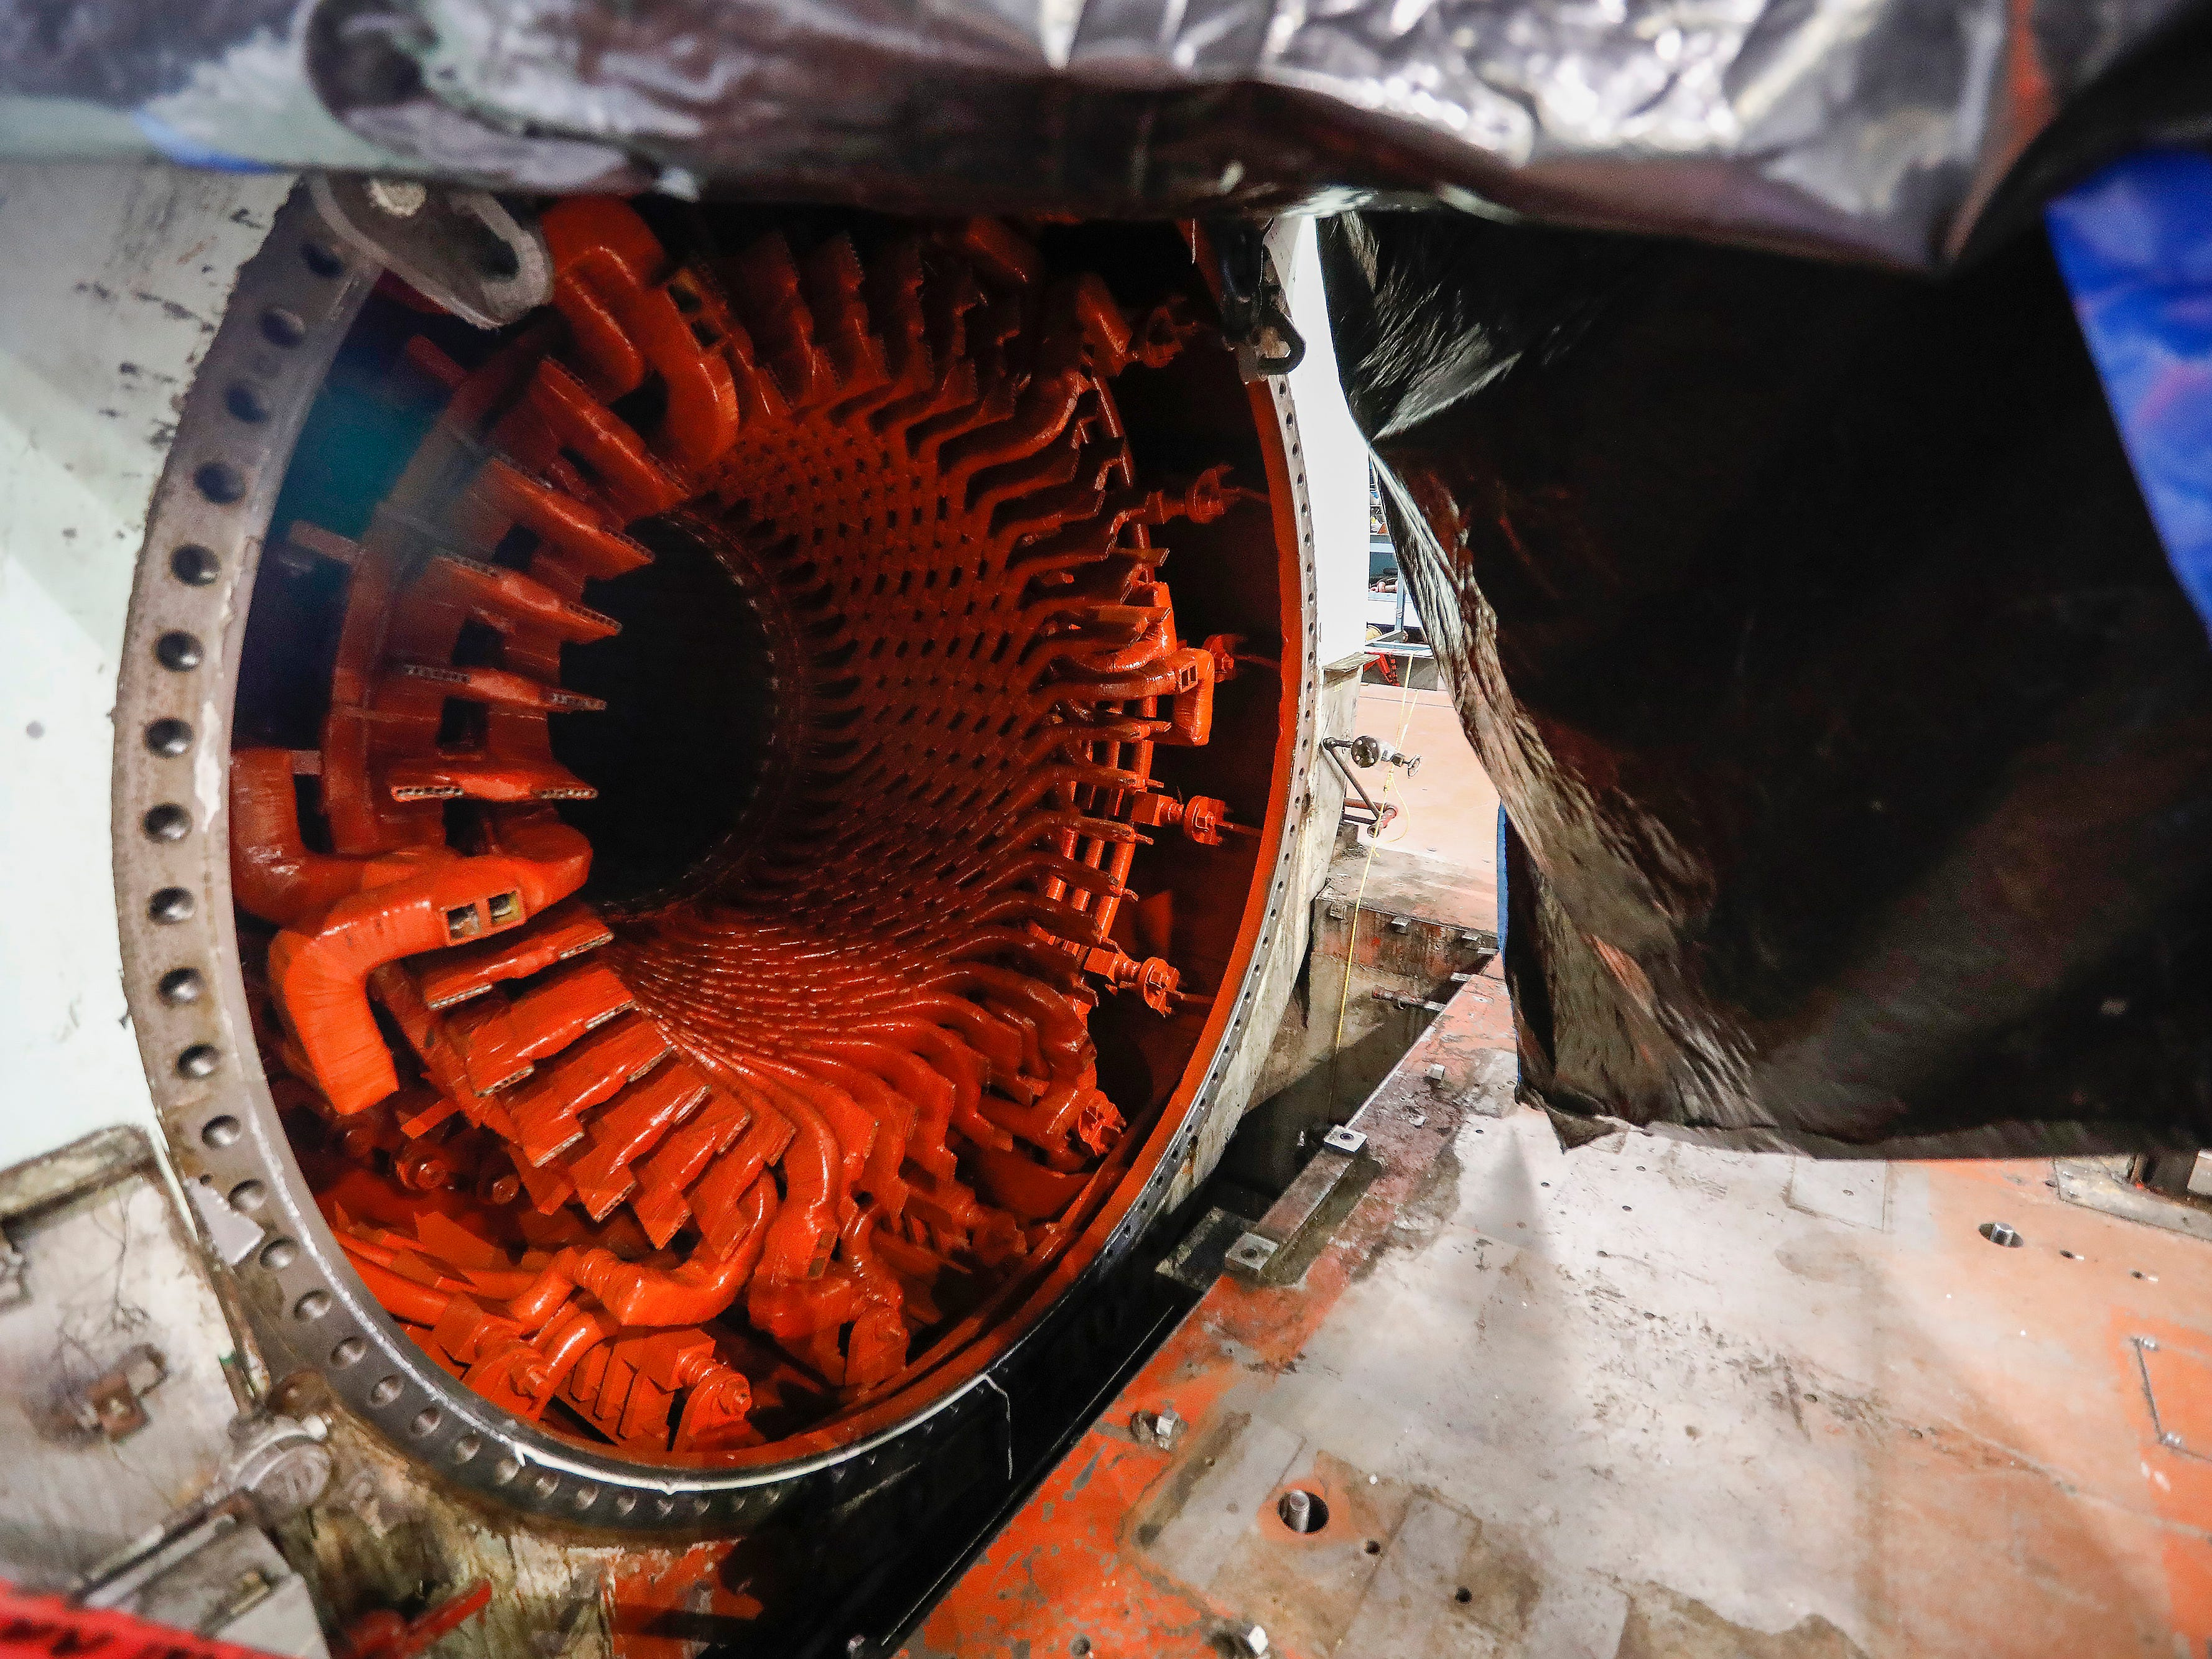 This is where the 86,000 pound turbine sits inside the generator at the John Twitty Energy Center.